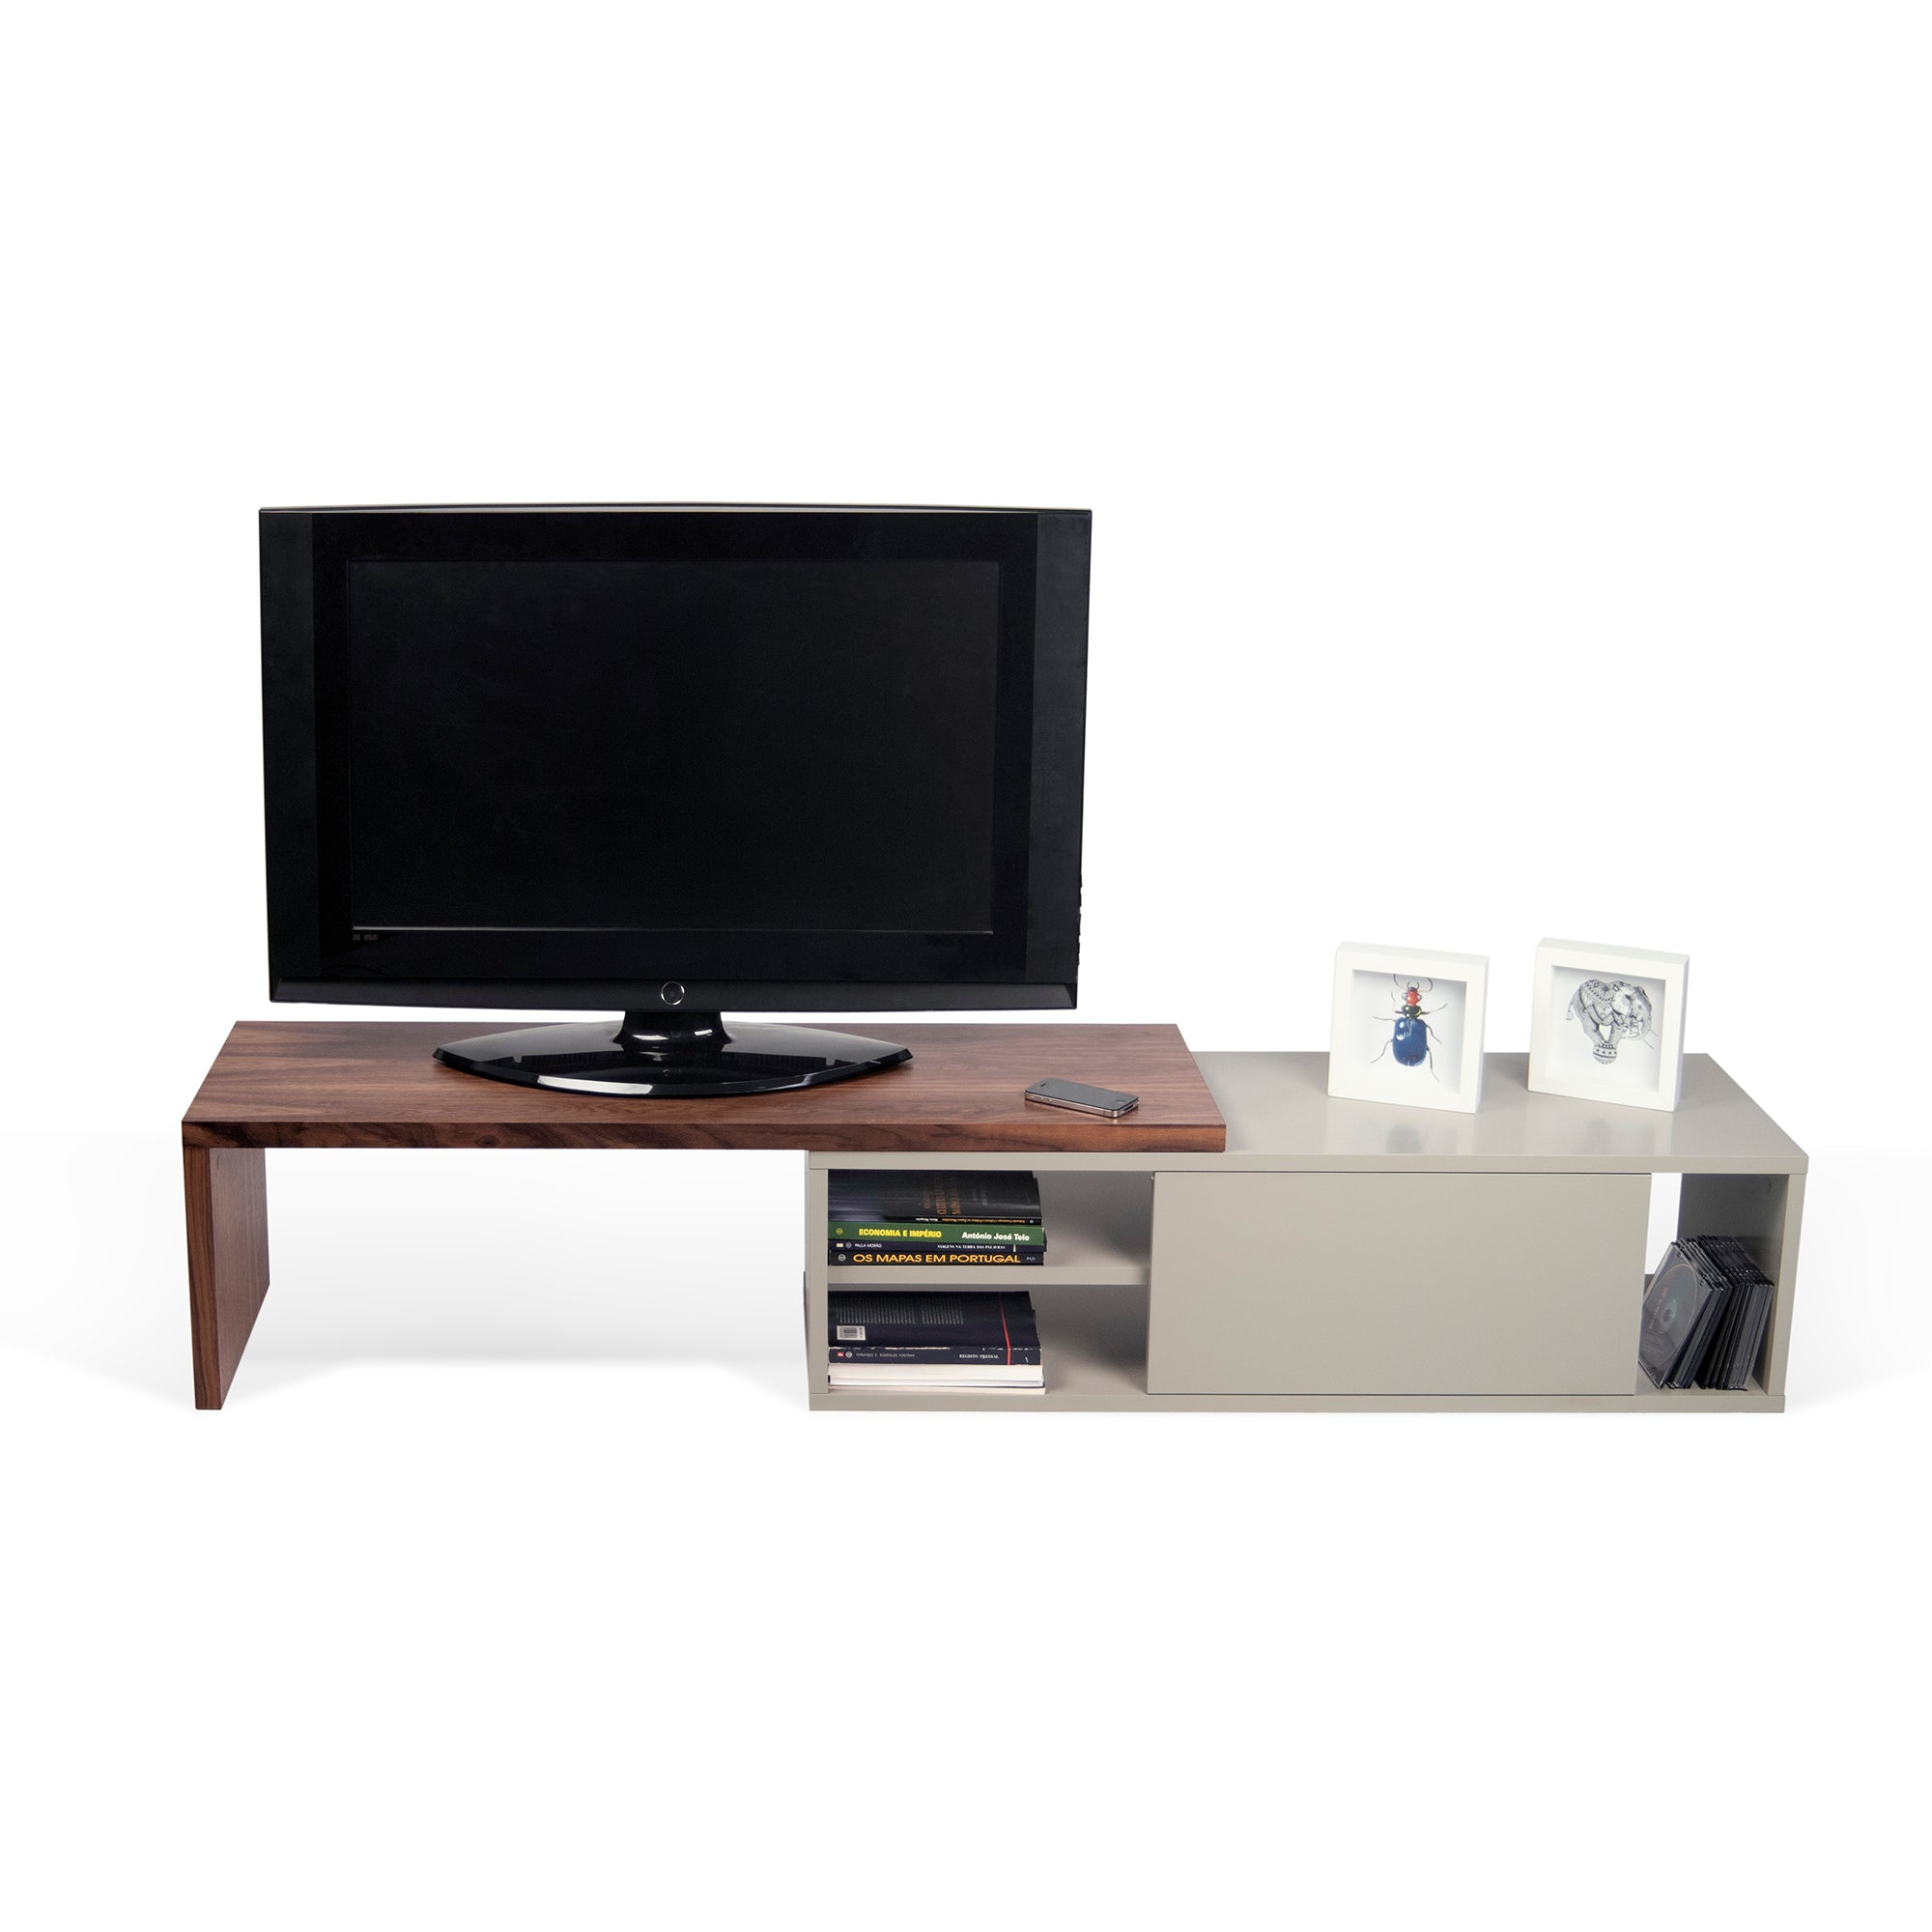 Move TV Table